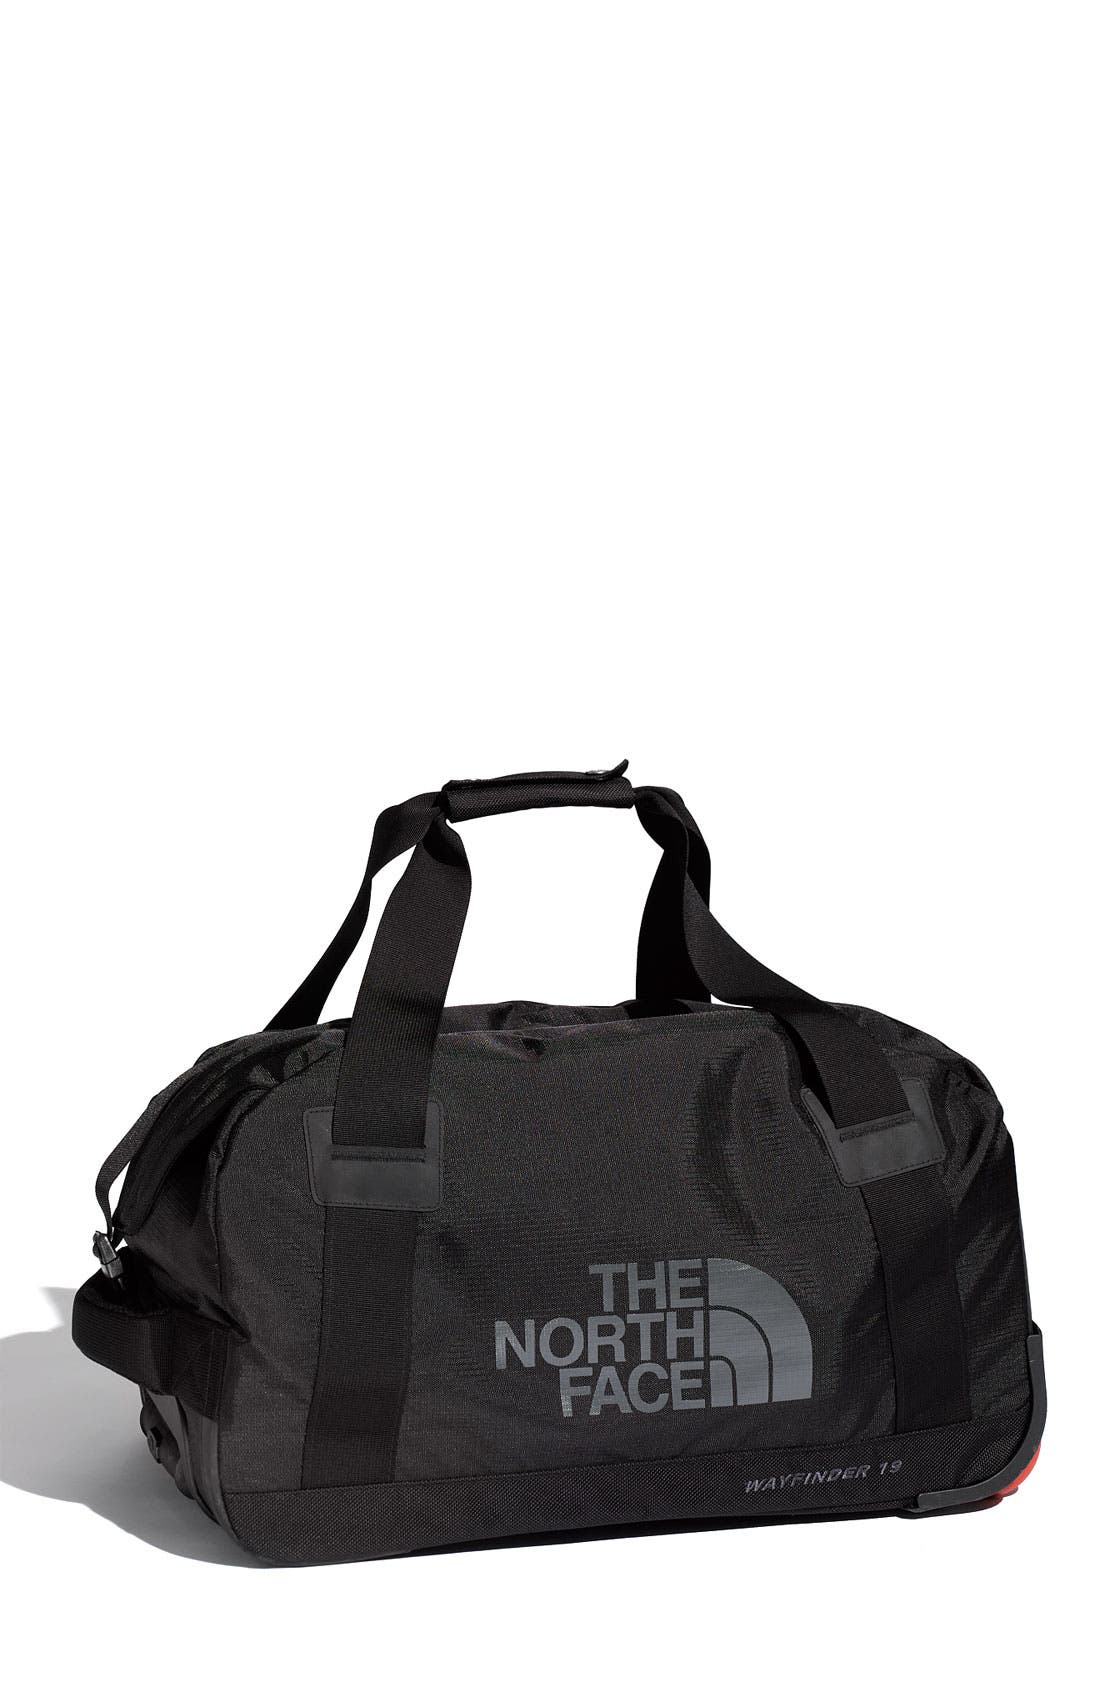 Alternate Image 1 Selected - The North Face 'Wayfinder' Carry-On Wheeled Duffel Bag